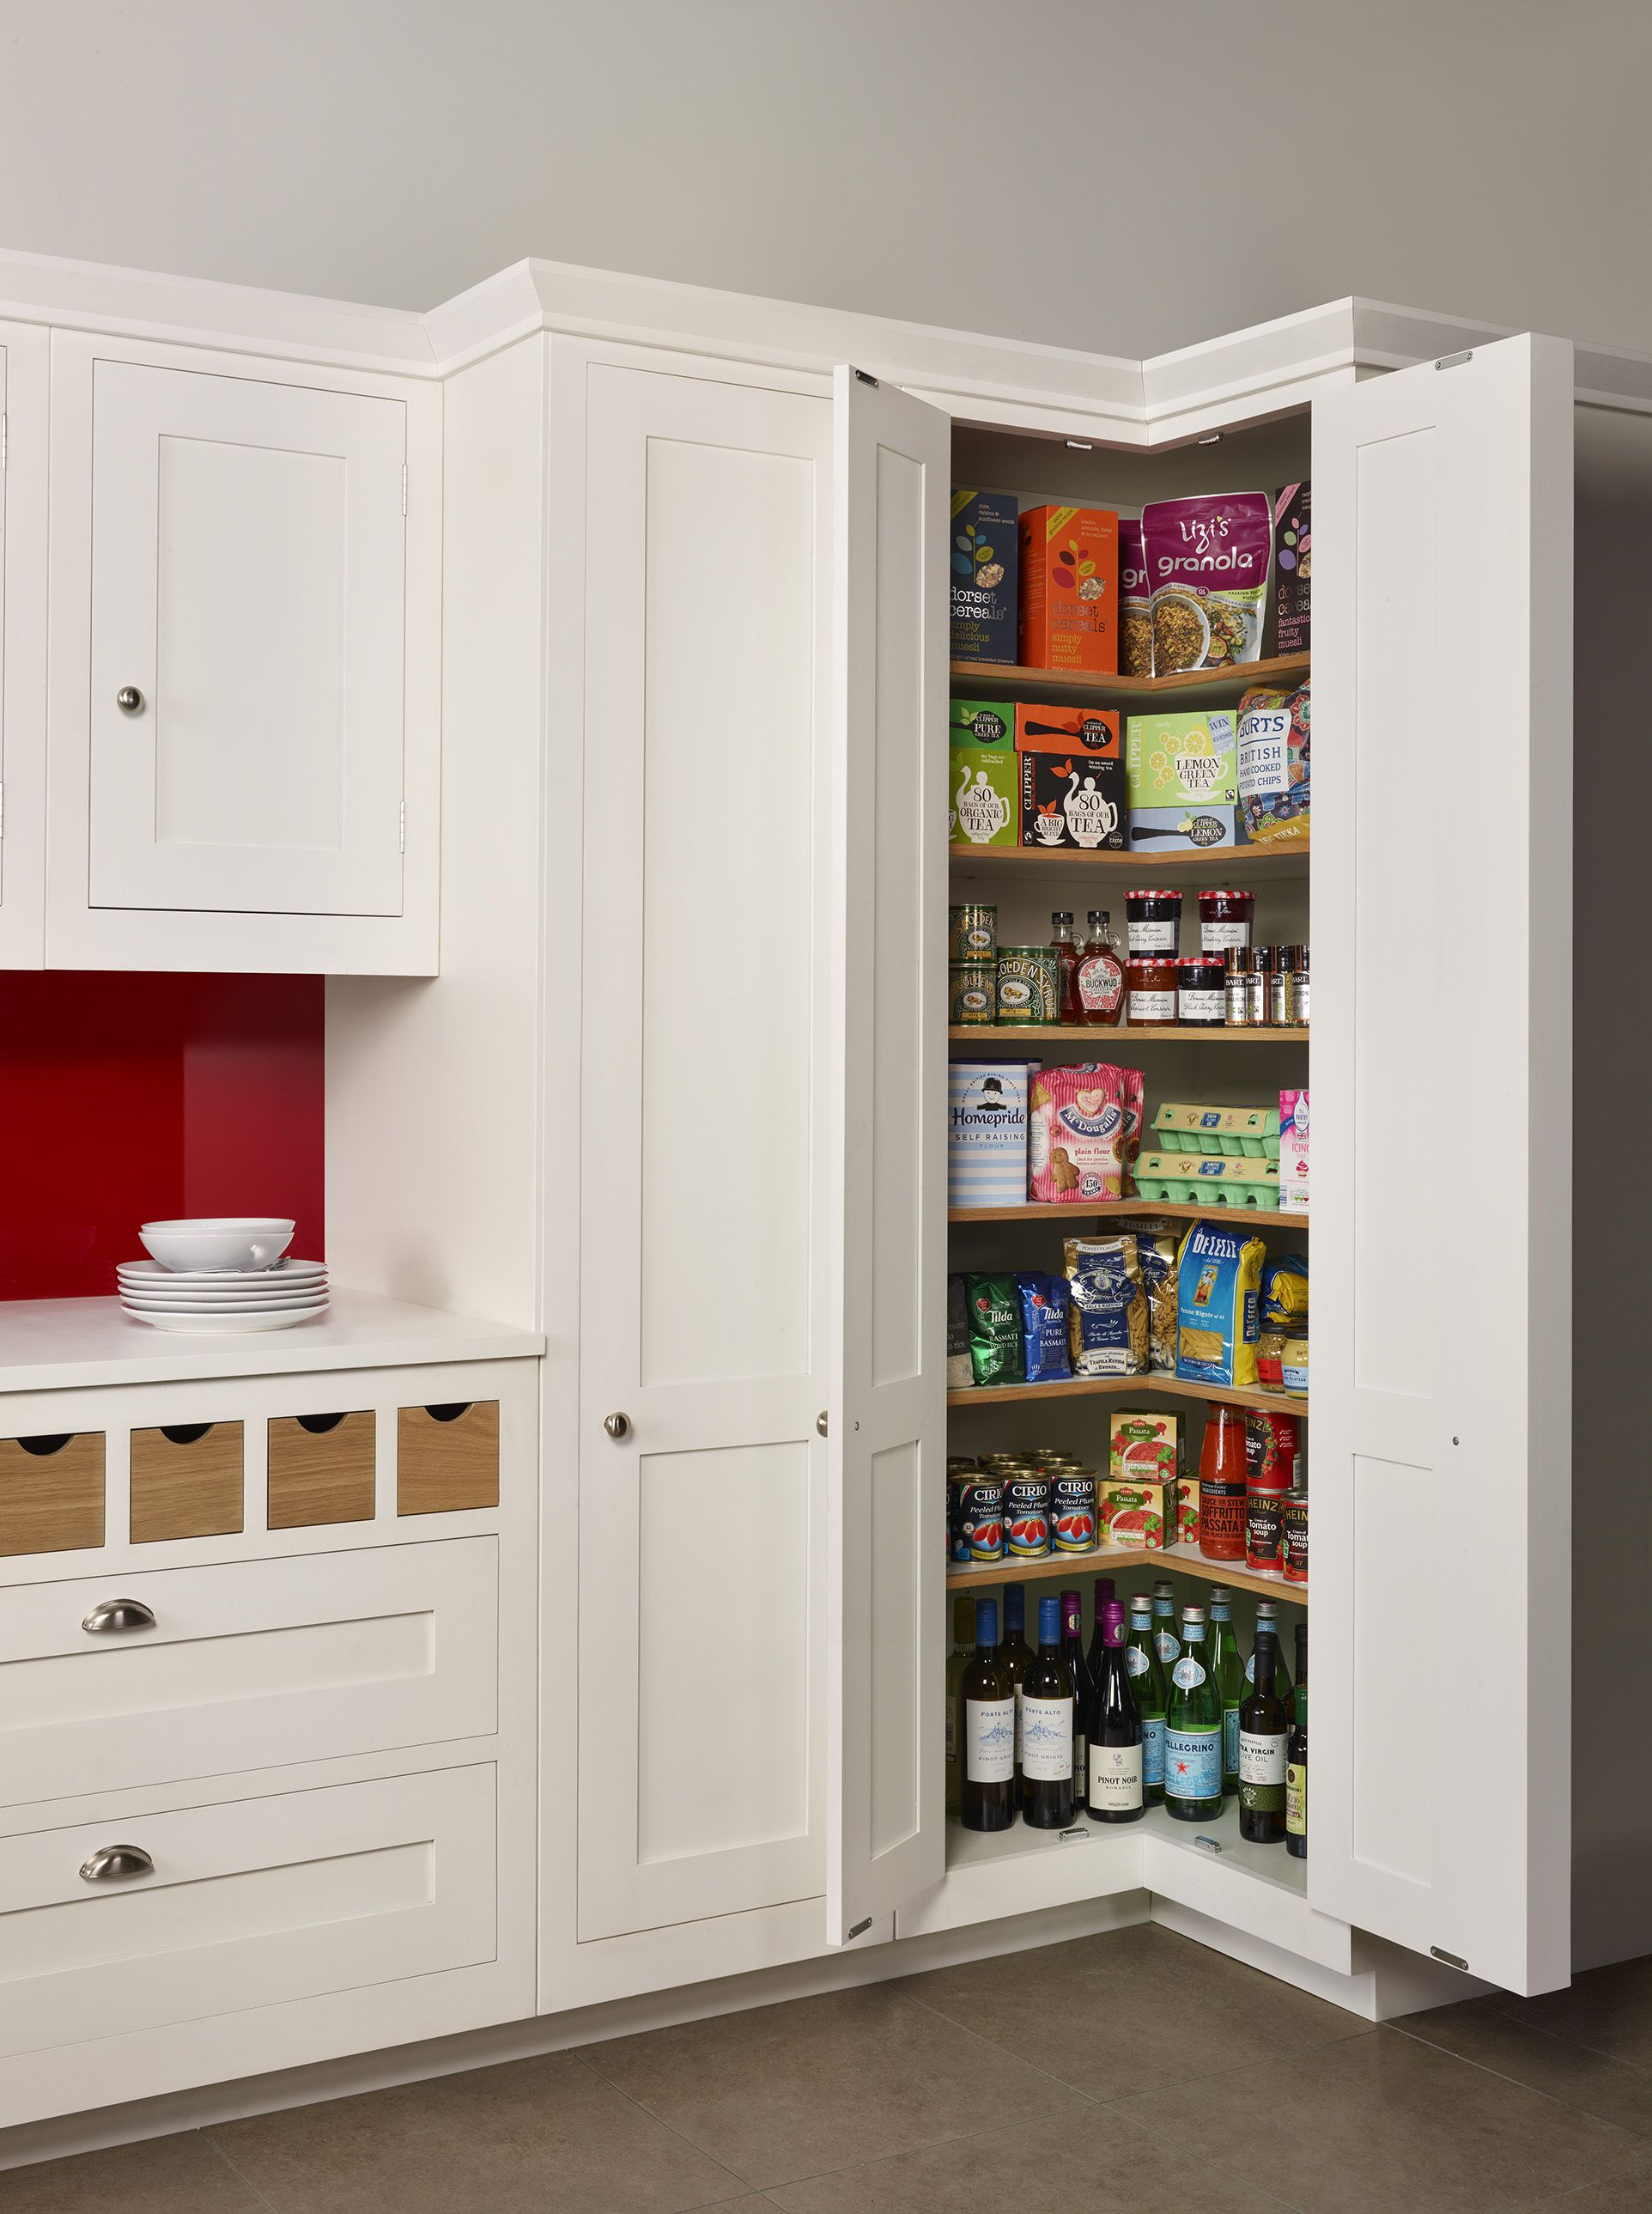 Hängeschrank Ecke Küche Related Image Small Spaces Kitchen Corner Cupboard Corner